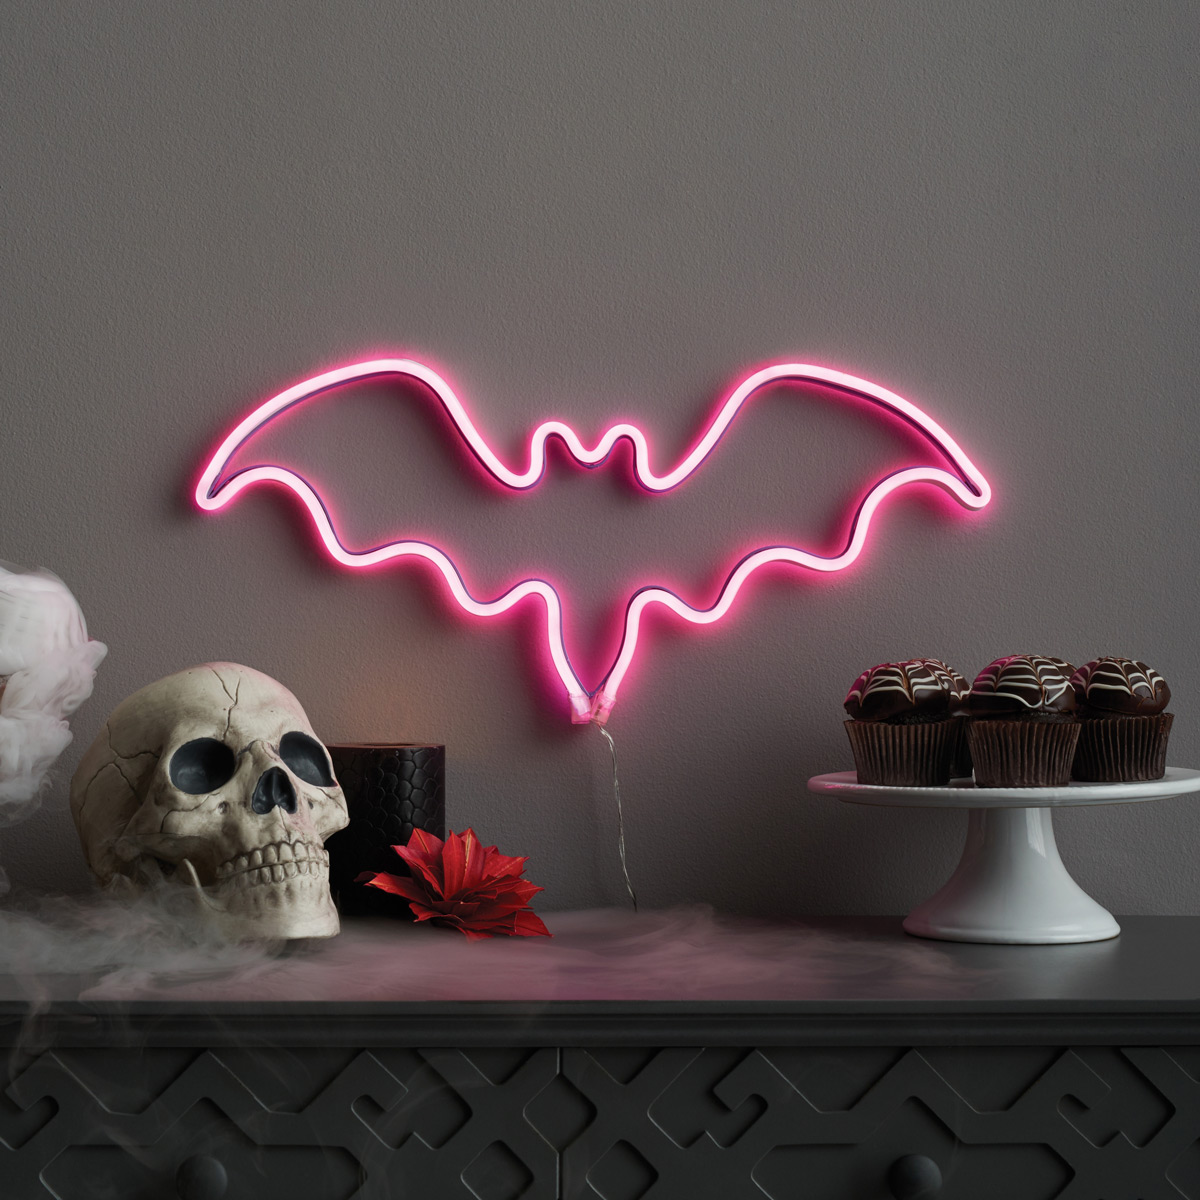 LED Bat and Ghost Silhouette Signs - The Green Head Rope Lighting Bat Ideas on floor lamps ideas, burning man tent ideas, rope knot work, rope architecture, signs ideas, rope lamps, rope lights, rope landscaping ideas, rope handrail ideas, rope design, accessories ideas, rope mirrors, rope pergola ideas, crown molding ideas, led ideas, movie theater basement ideas, holiday ideas, stair ideas, neon ideas, rope chandelier,